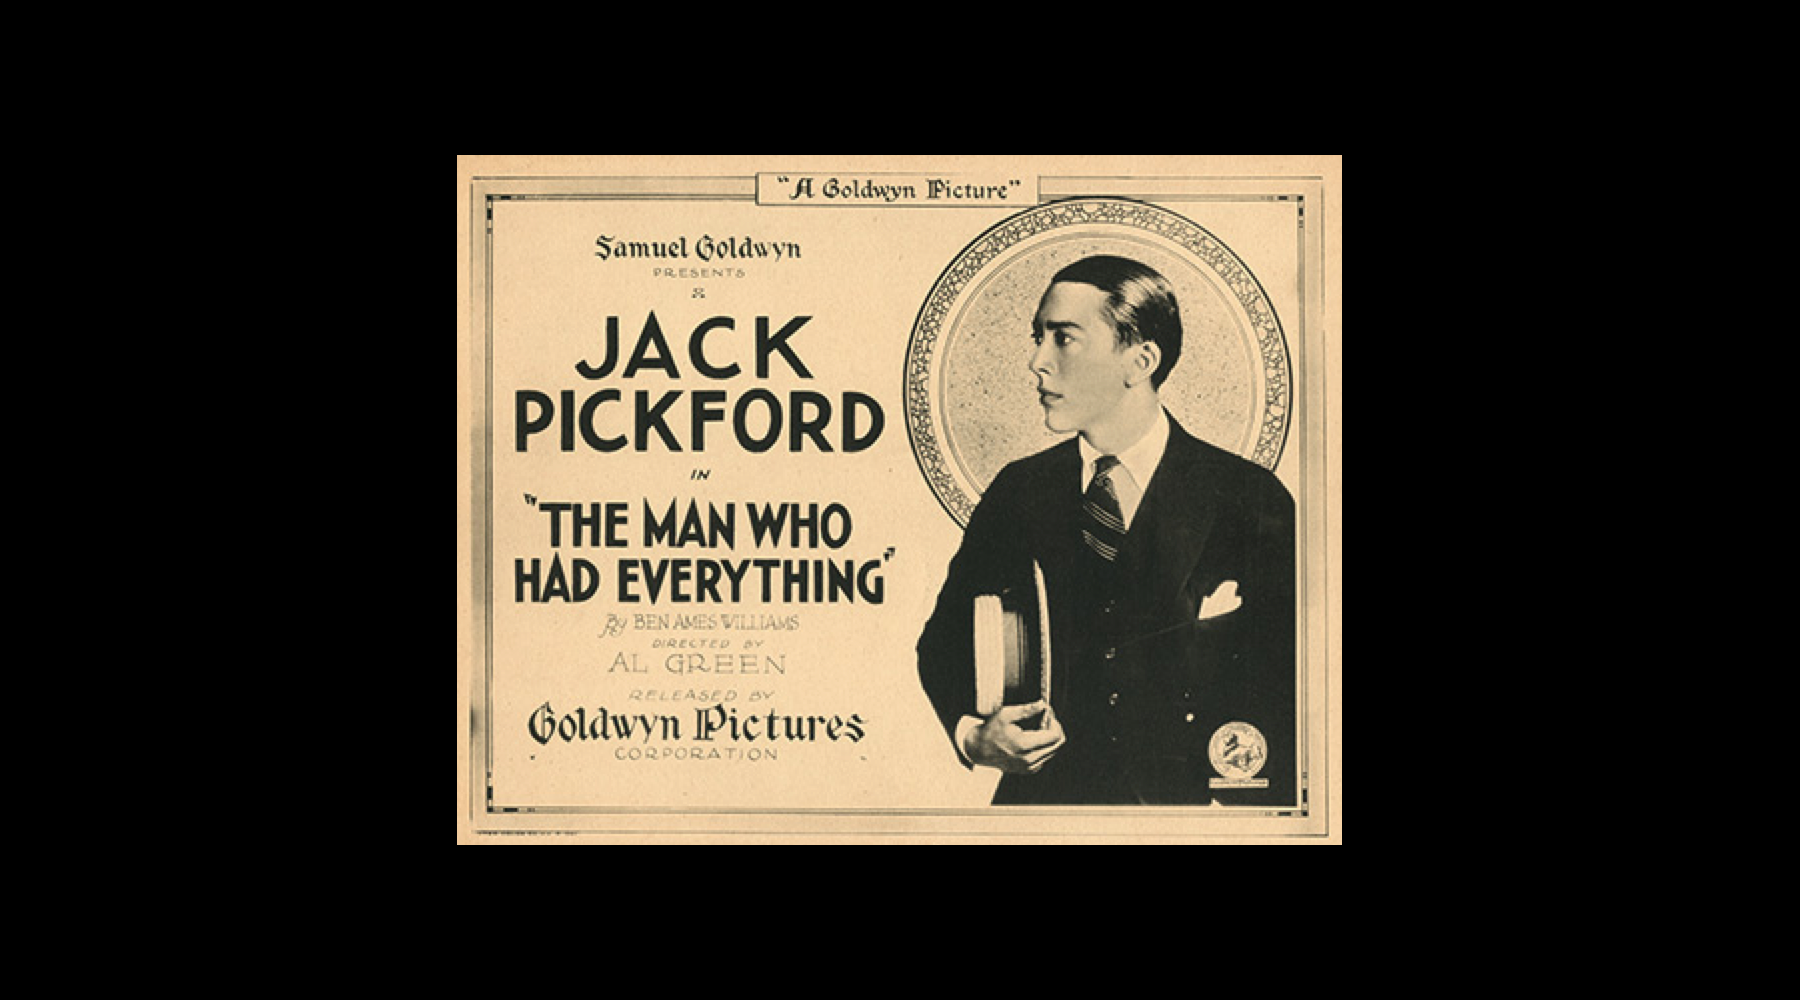 Jack Pickford, the man who had everything, even syphilis?